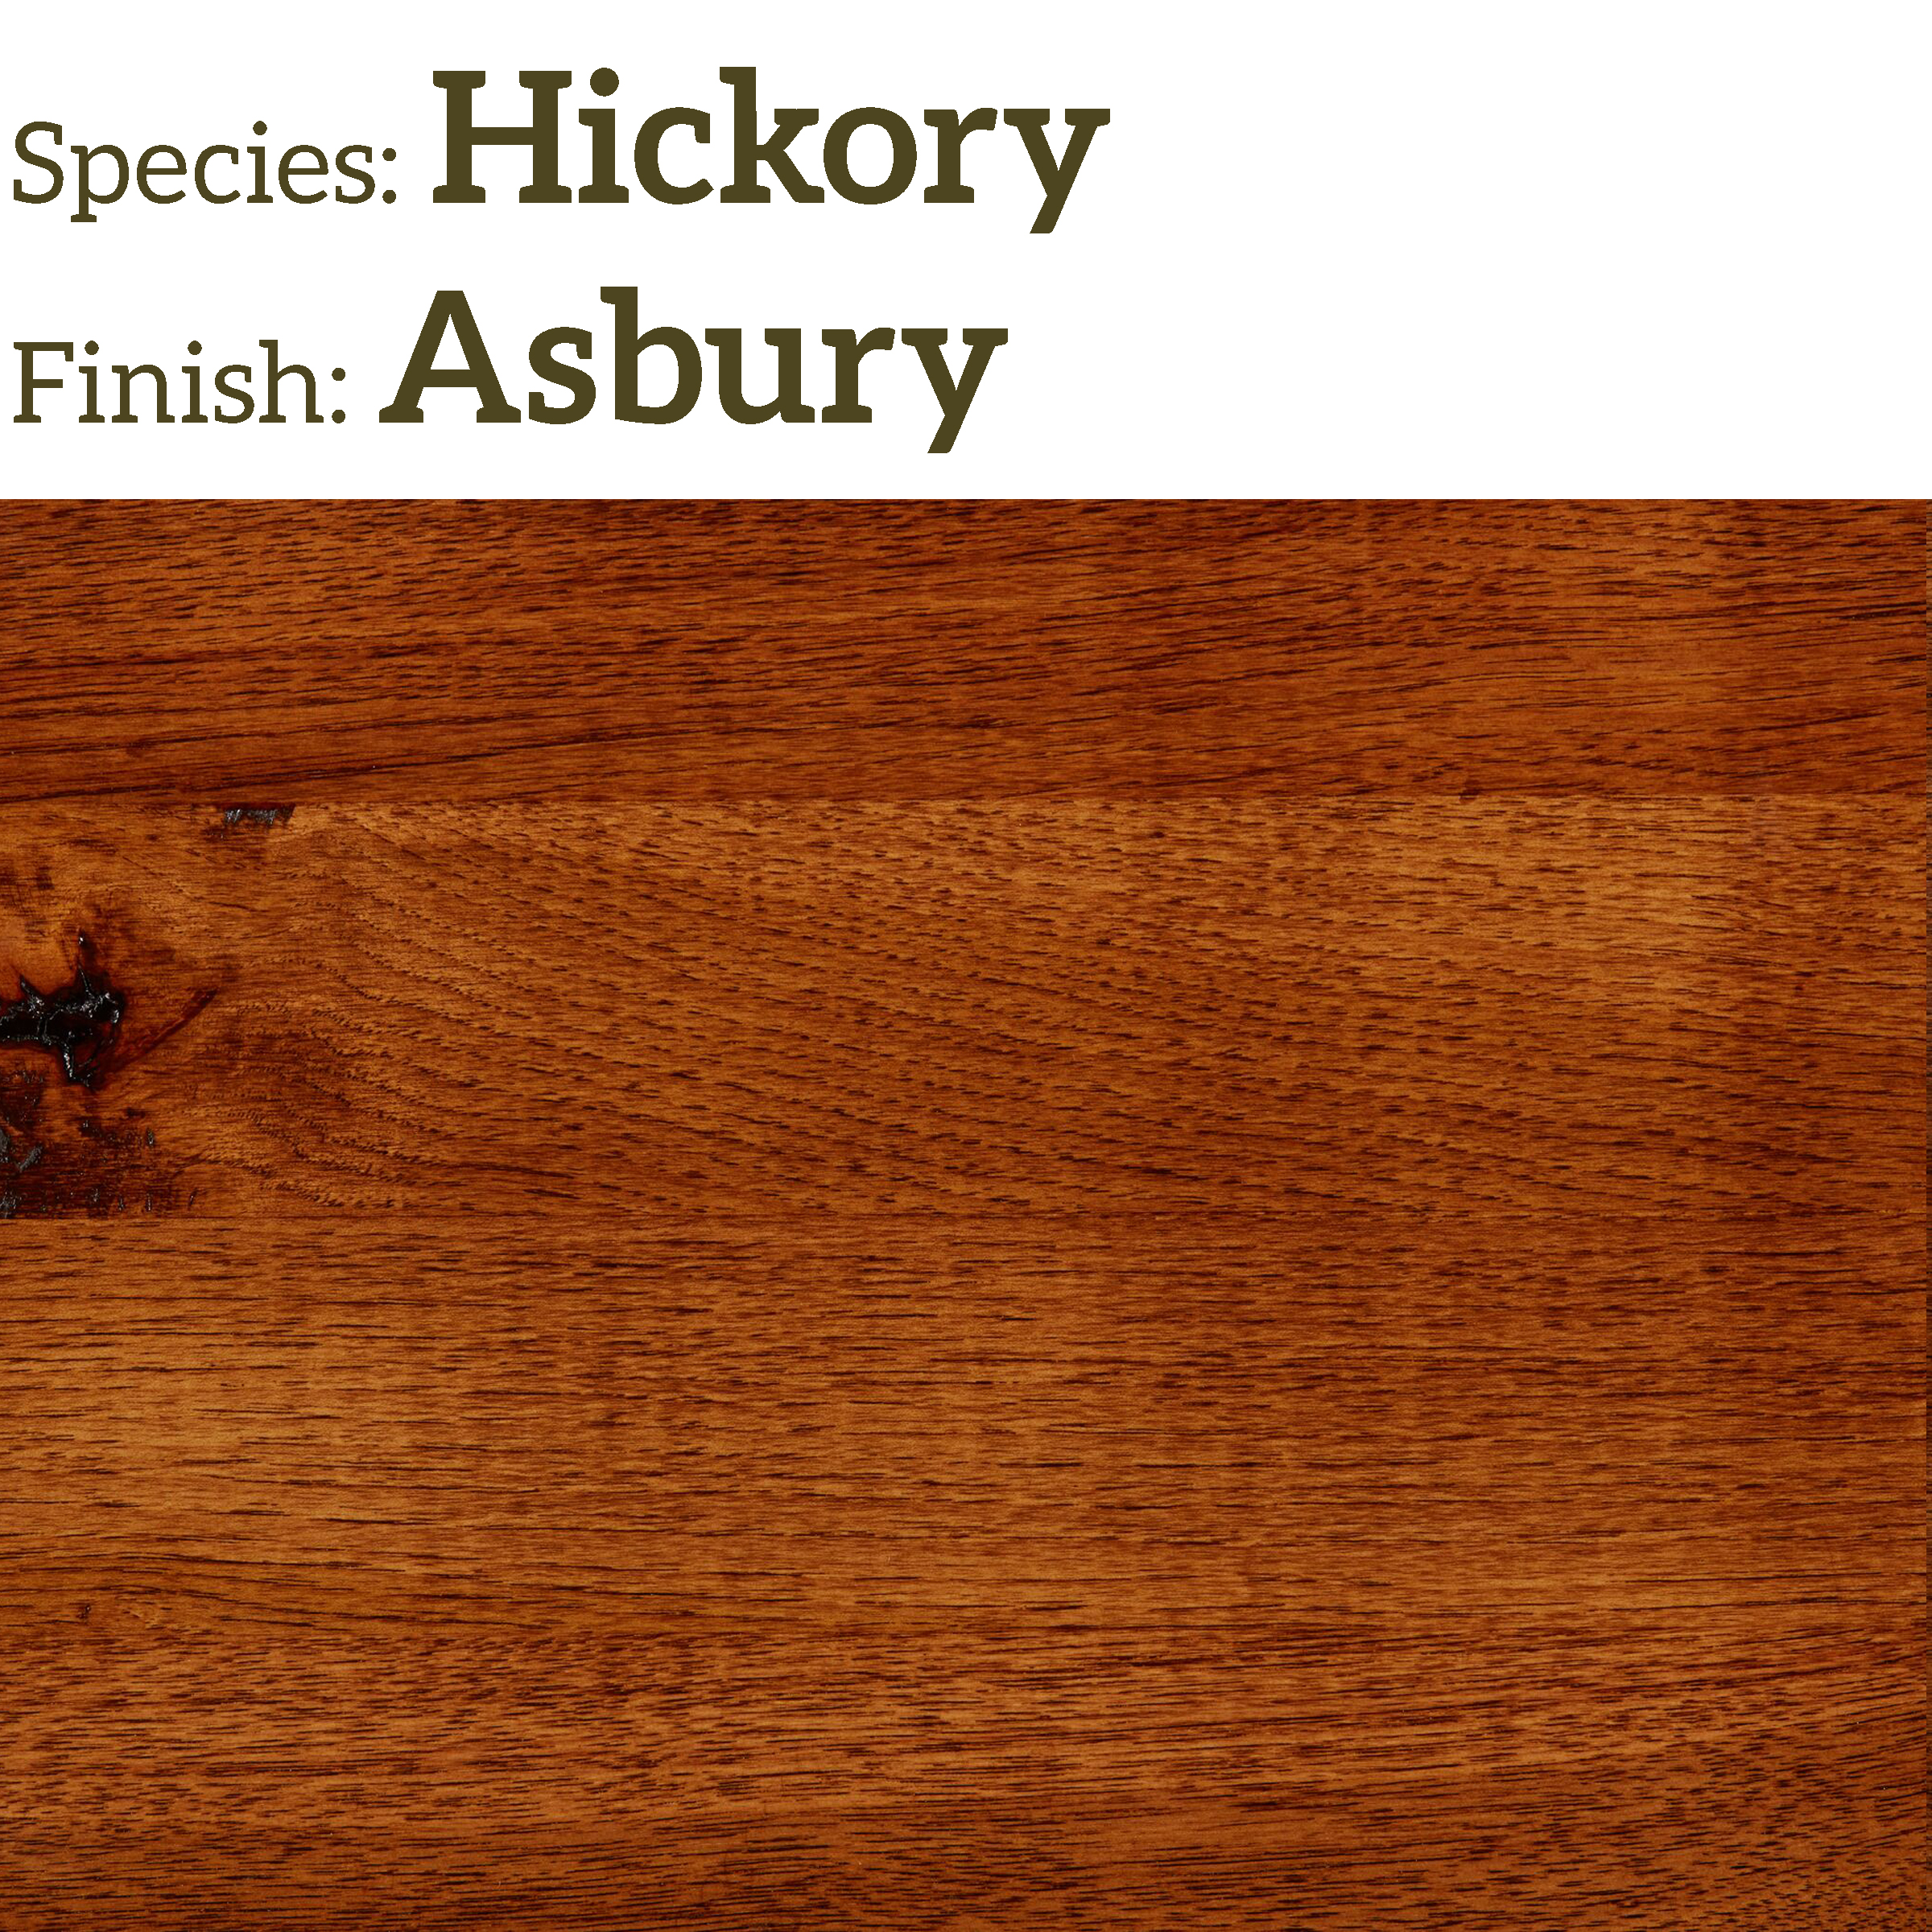 Stair Supplies Manufactures And Distributes A Large Number Of Hickory Stair  Parts Every Day. Call A Stair Specialist For Help In Selecting The Right  Parts ...